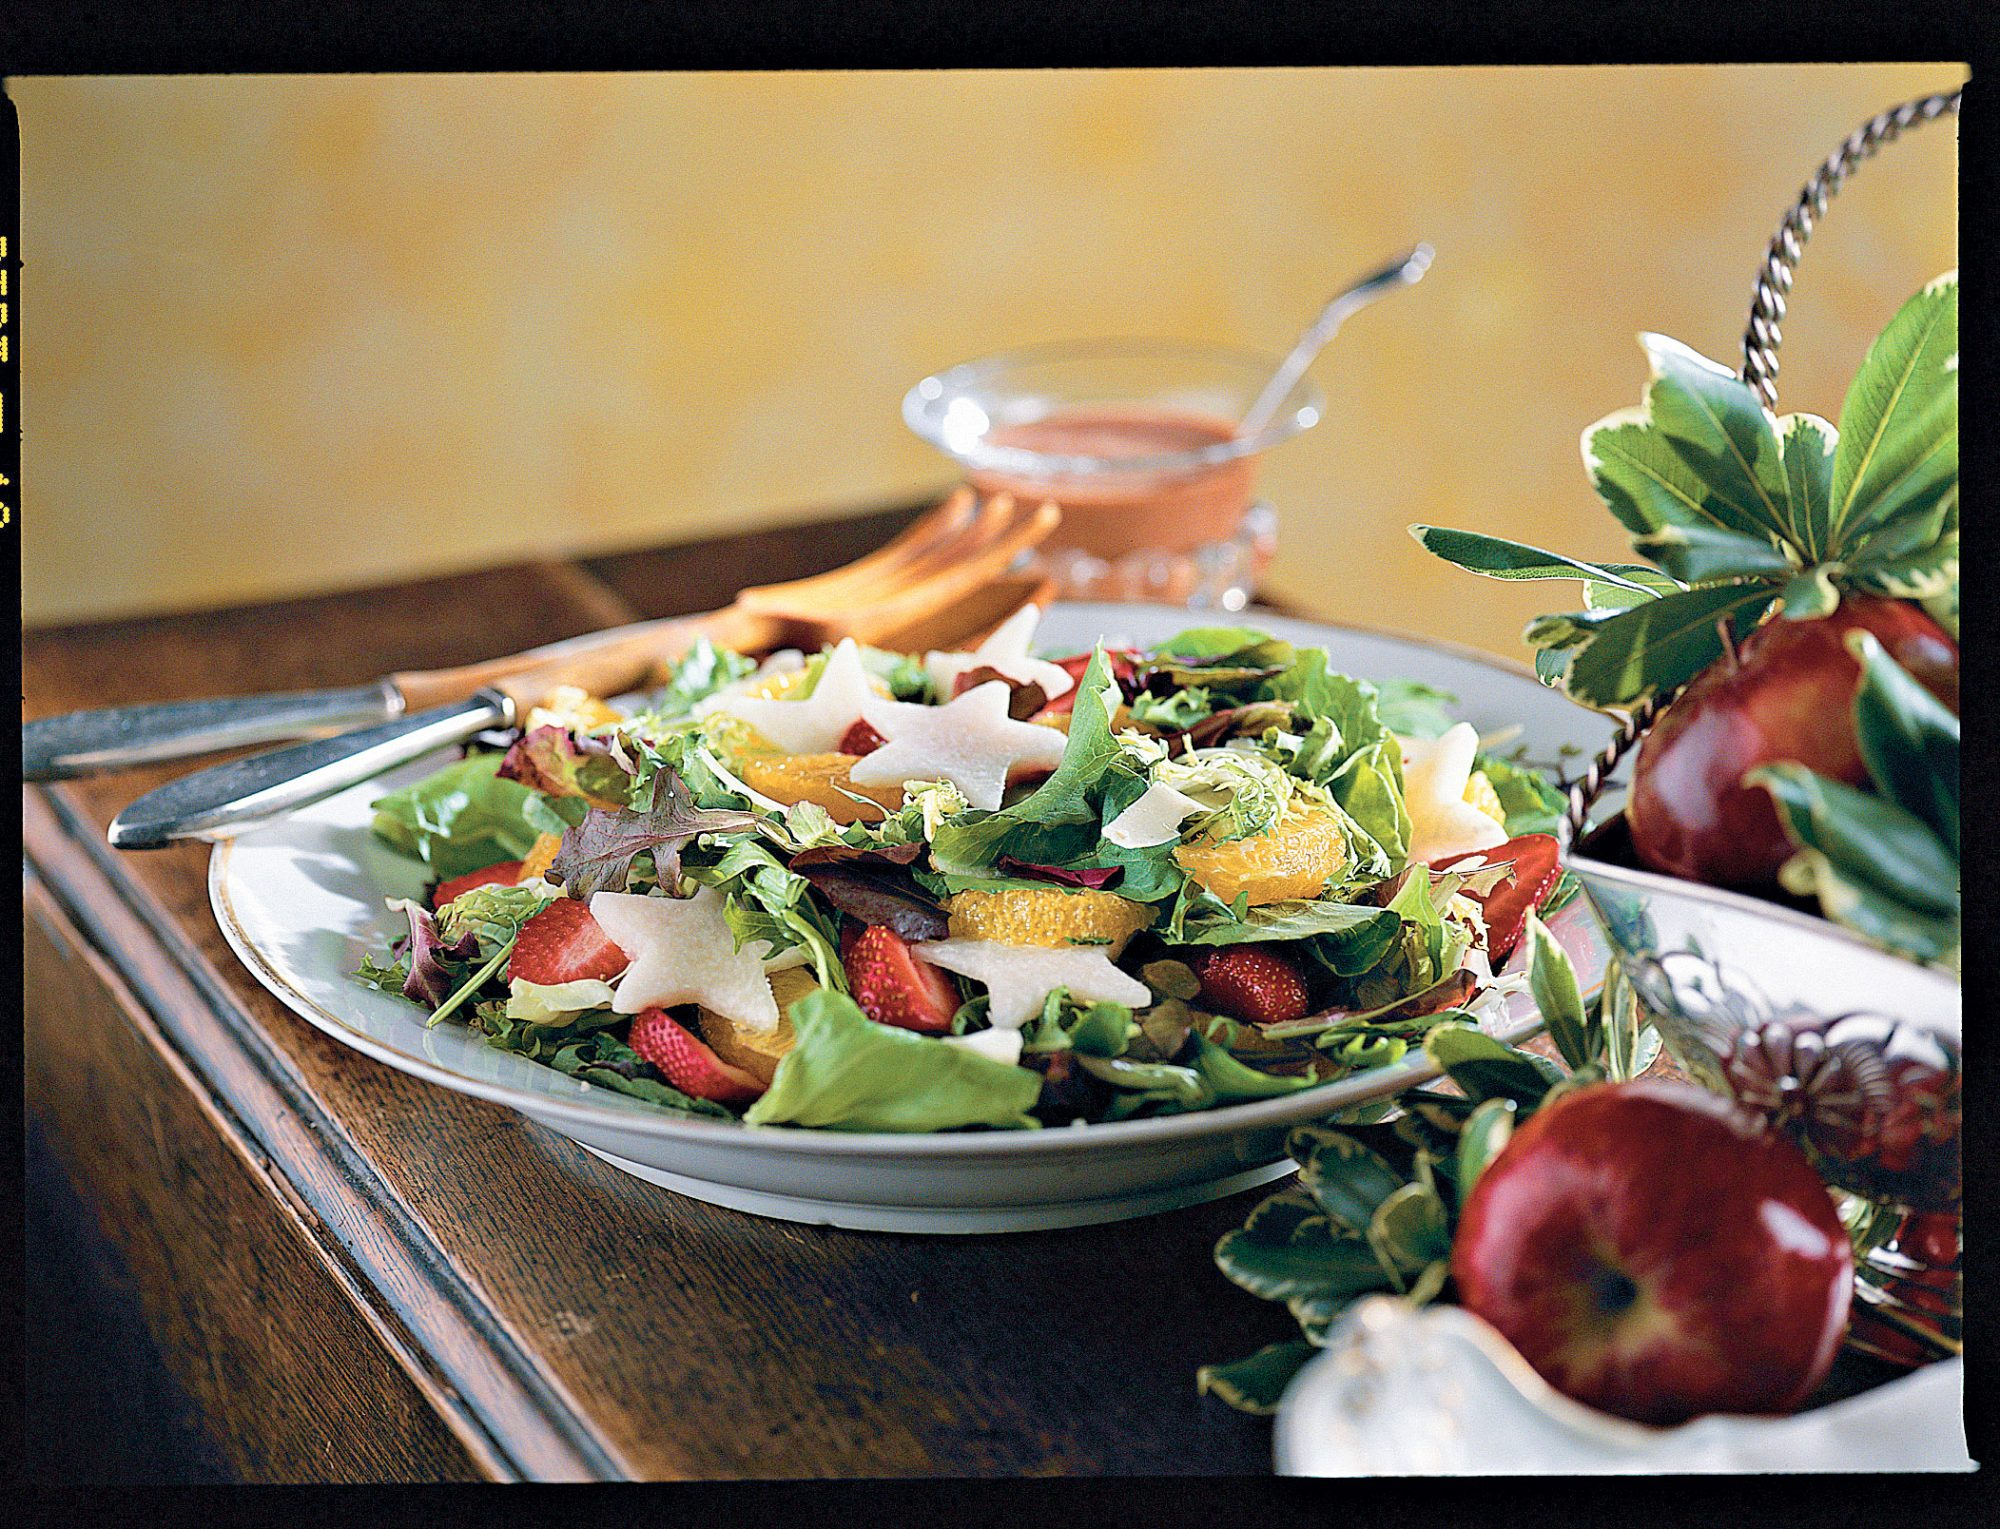 Cranberry-Strawberry-Jícama Salad